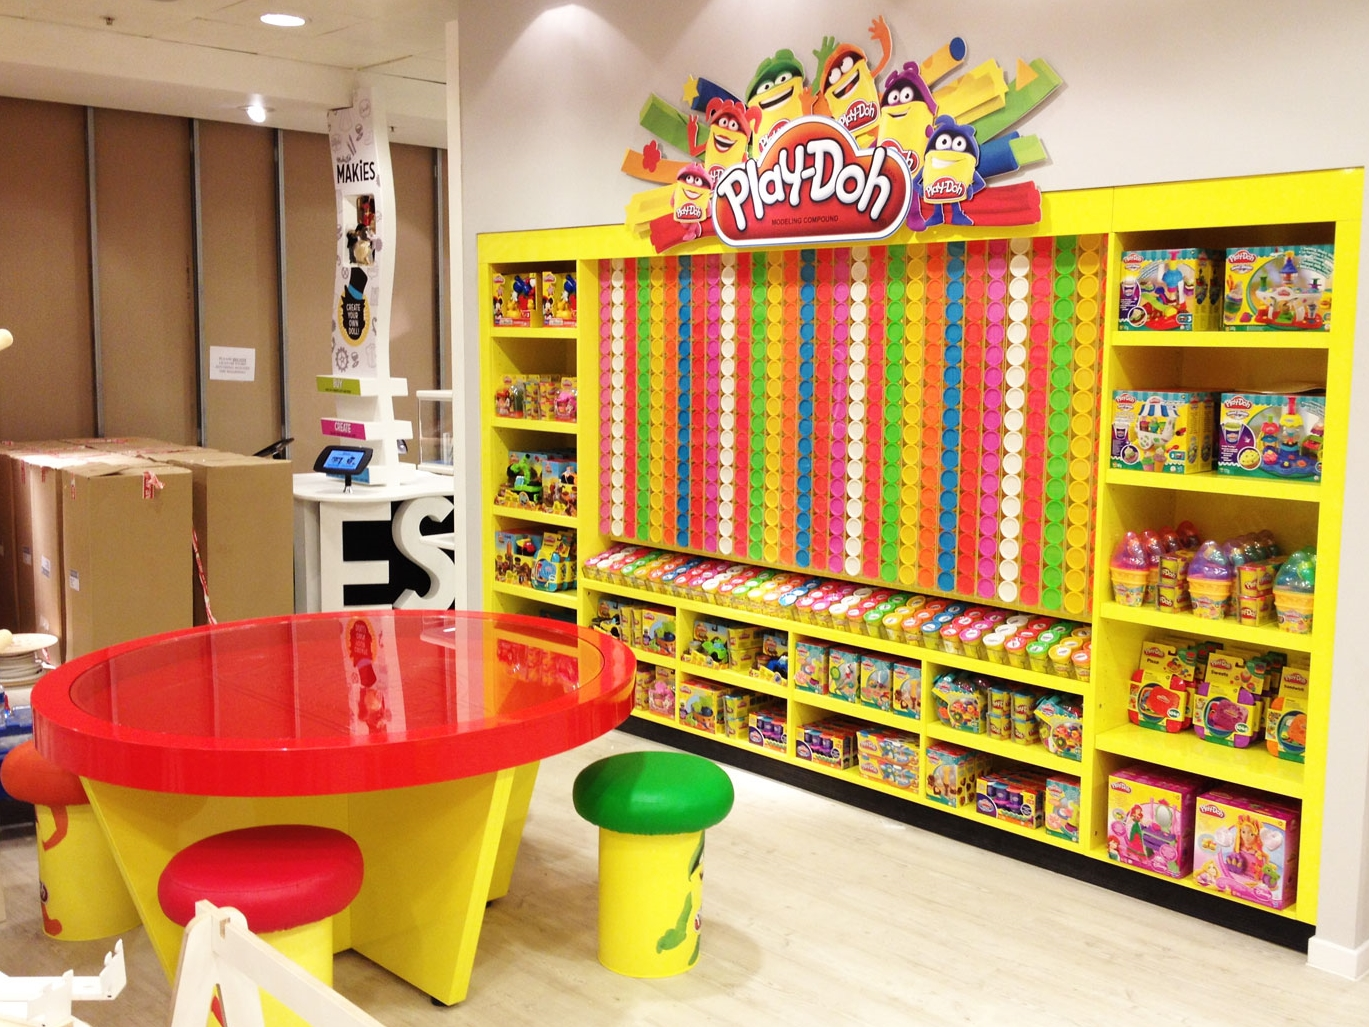 Propability-_Creative-Design-_-Secondary-Shop-Fittings-_-Visual-Merchandising-Solutions-and-Manufacture-_-Play-Doh-Hasbro-Selfridges-_-Final-fit-instore.jpg